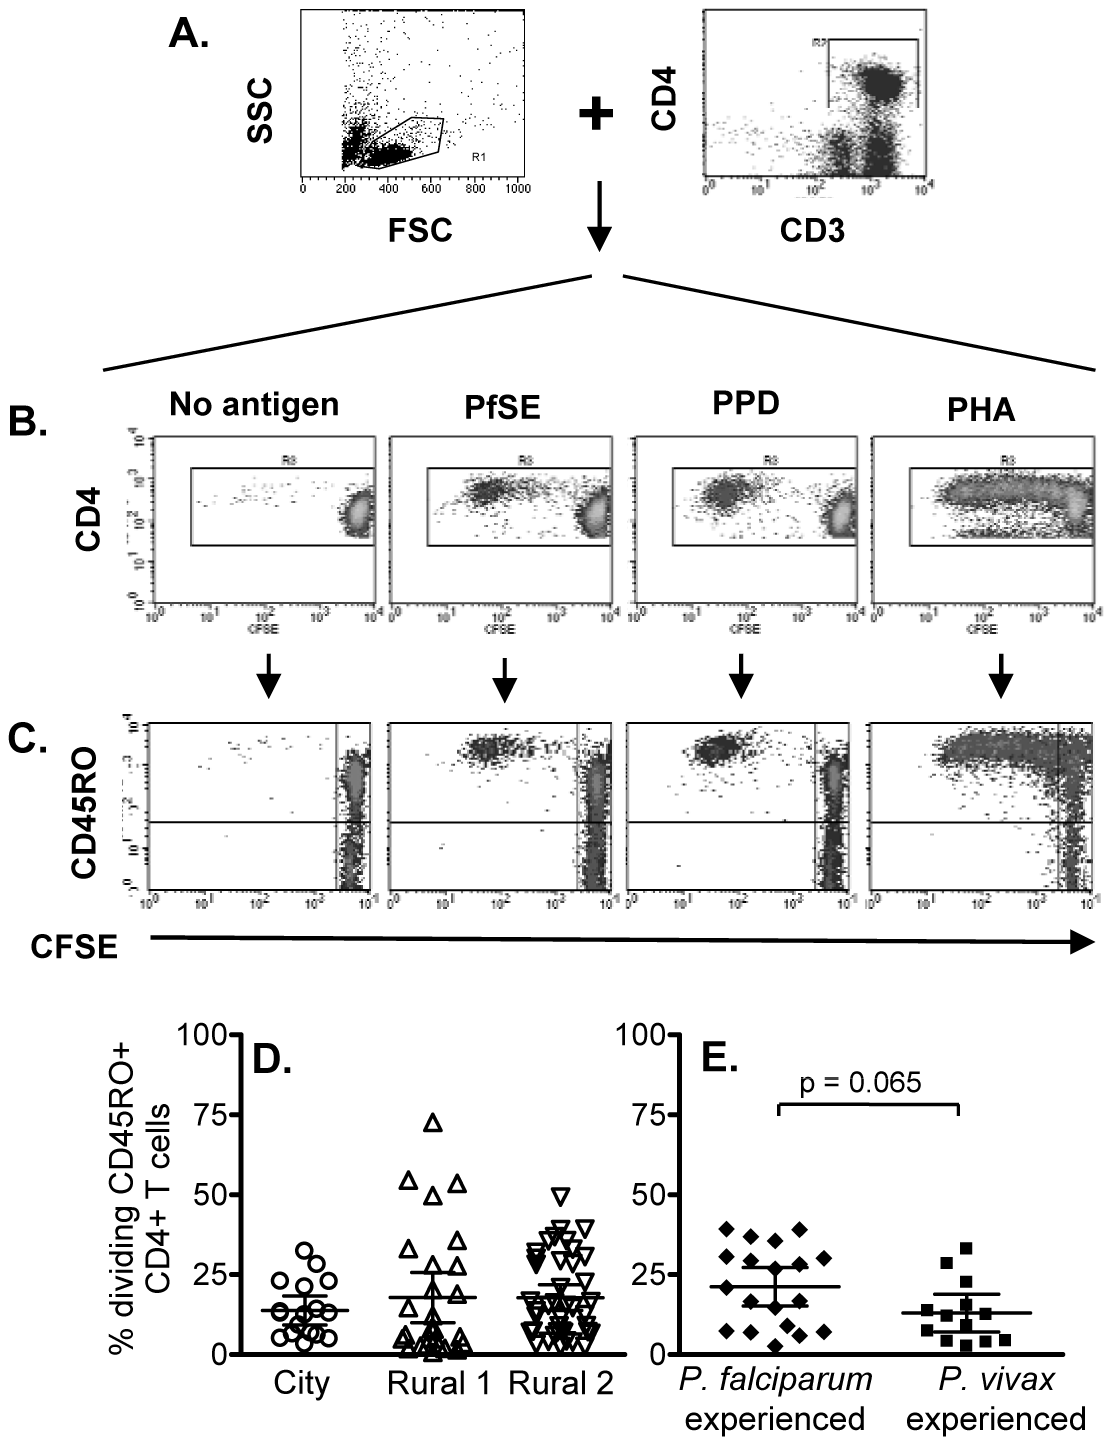 Flow cytometric characterization, frequencies and longevity of memory CD4 T cells proliferating in response to PfSE.